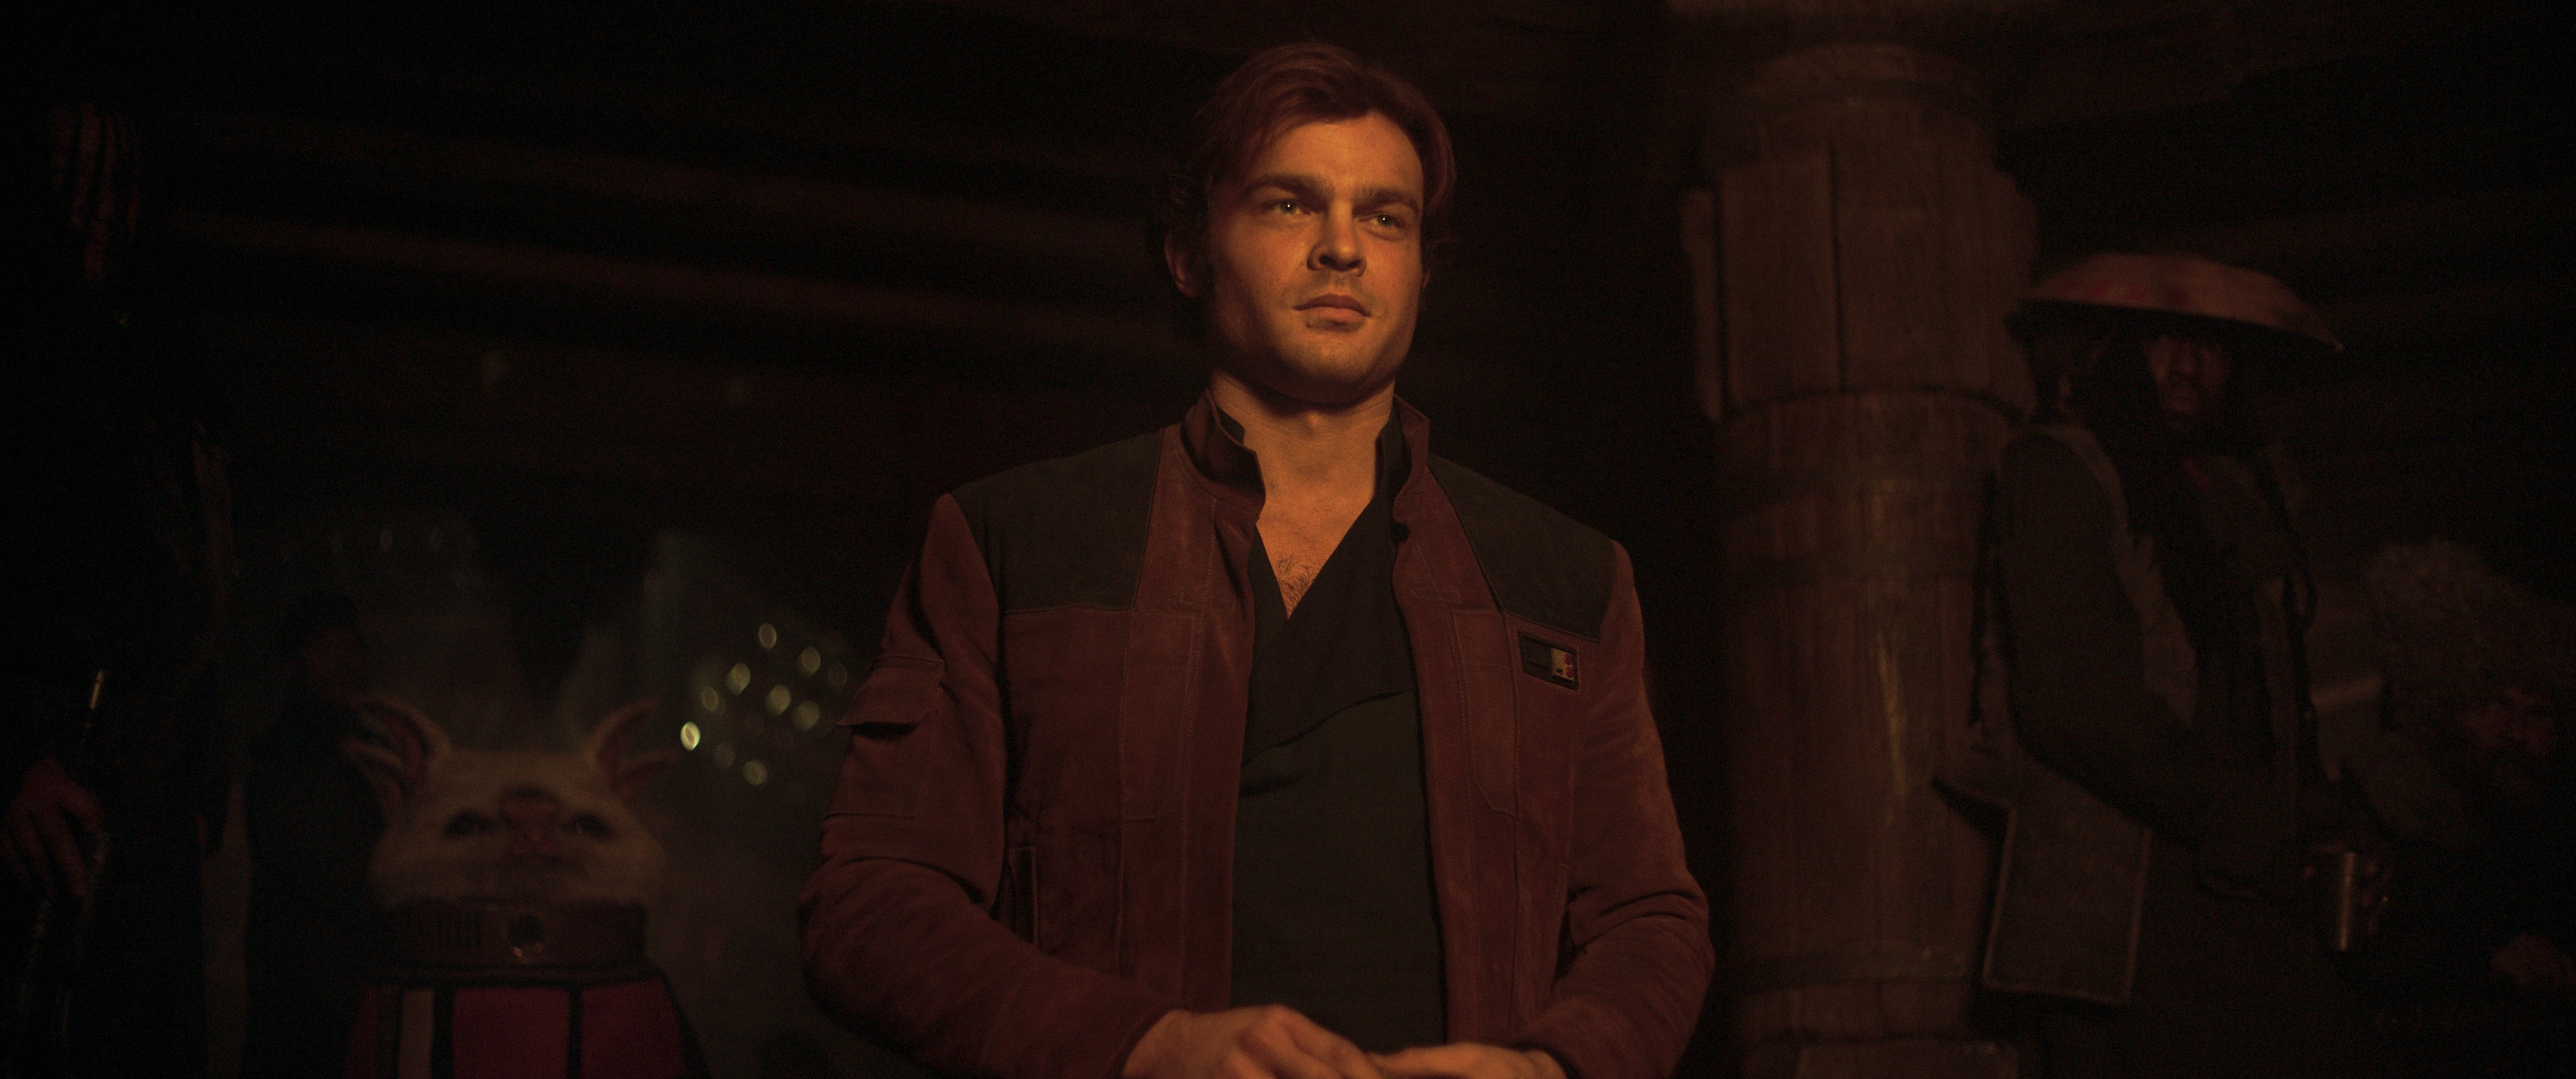 Solo: A Star Wars Story NEW Trailer + Poster #HanSolo